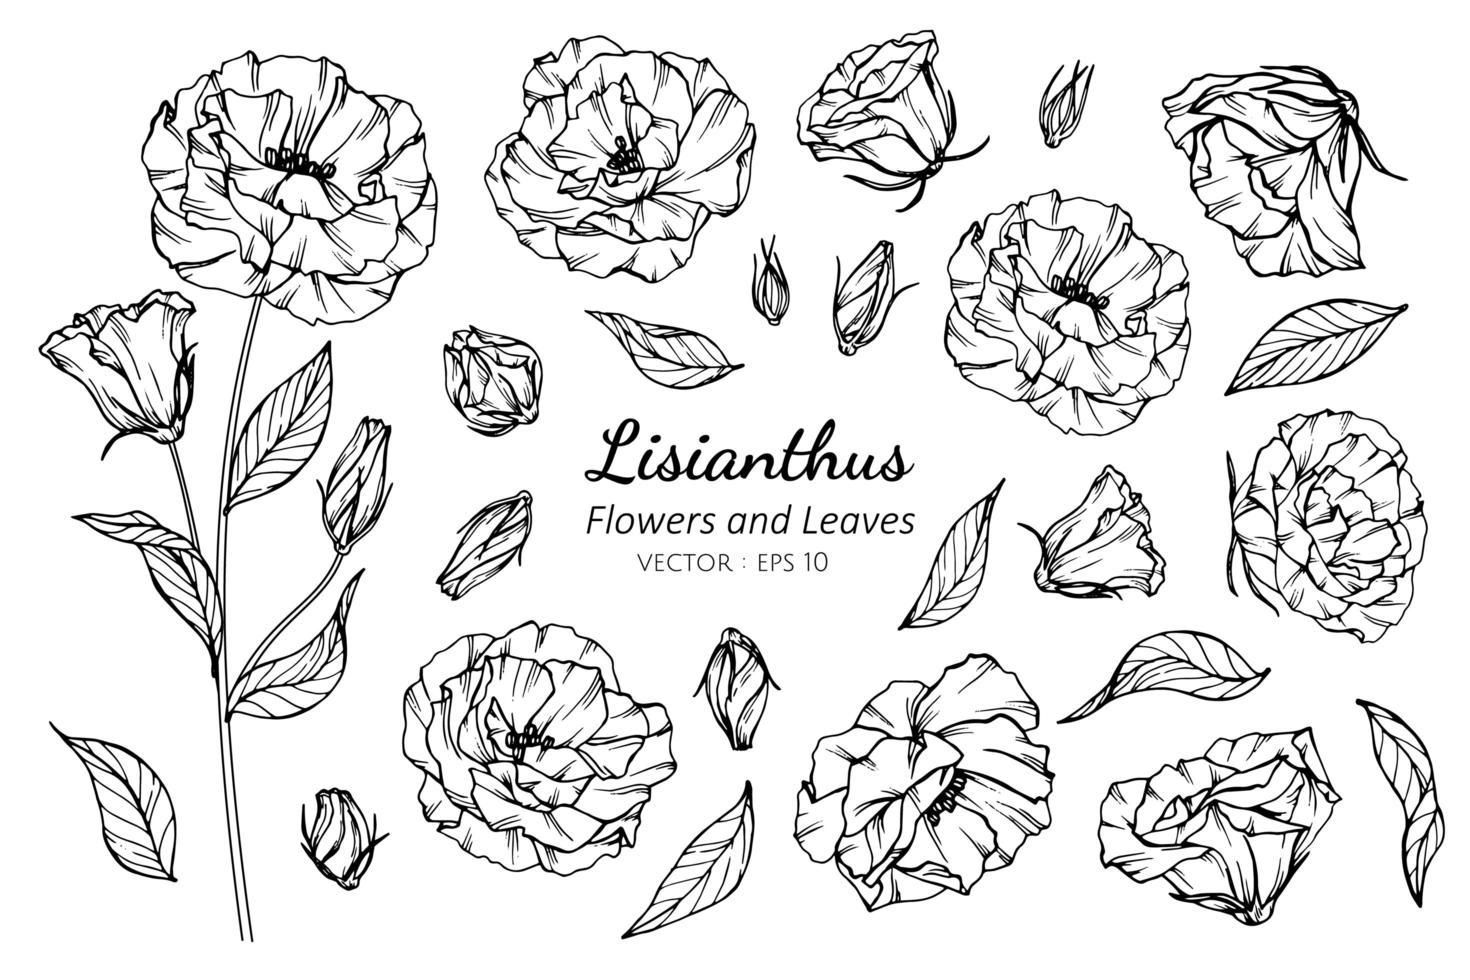 Collection of Lisianthus flower and leaves vector